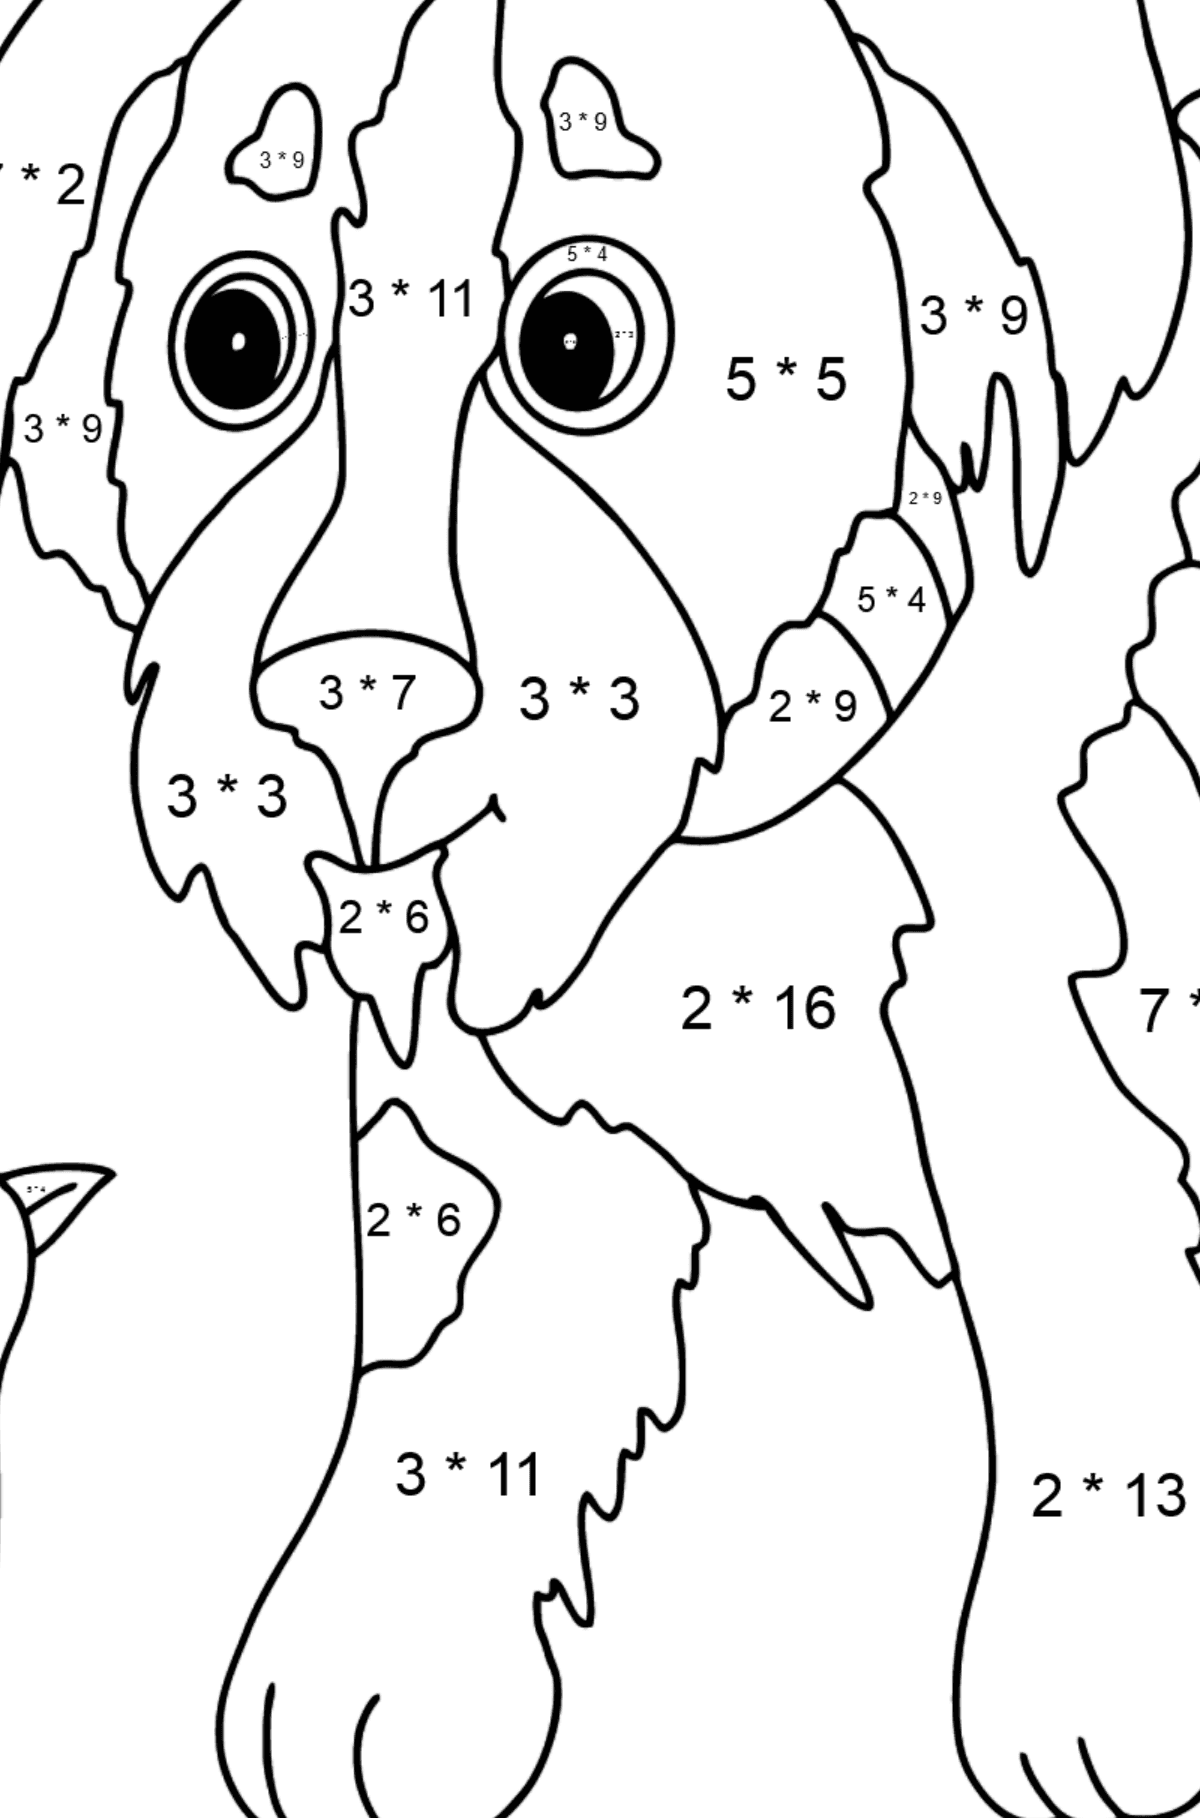 Coloring Page - A Dog is Playing with a Bird - Math Coloring - Multiplication for Kids